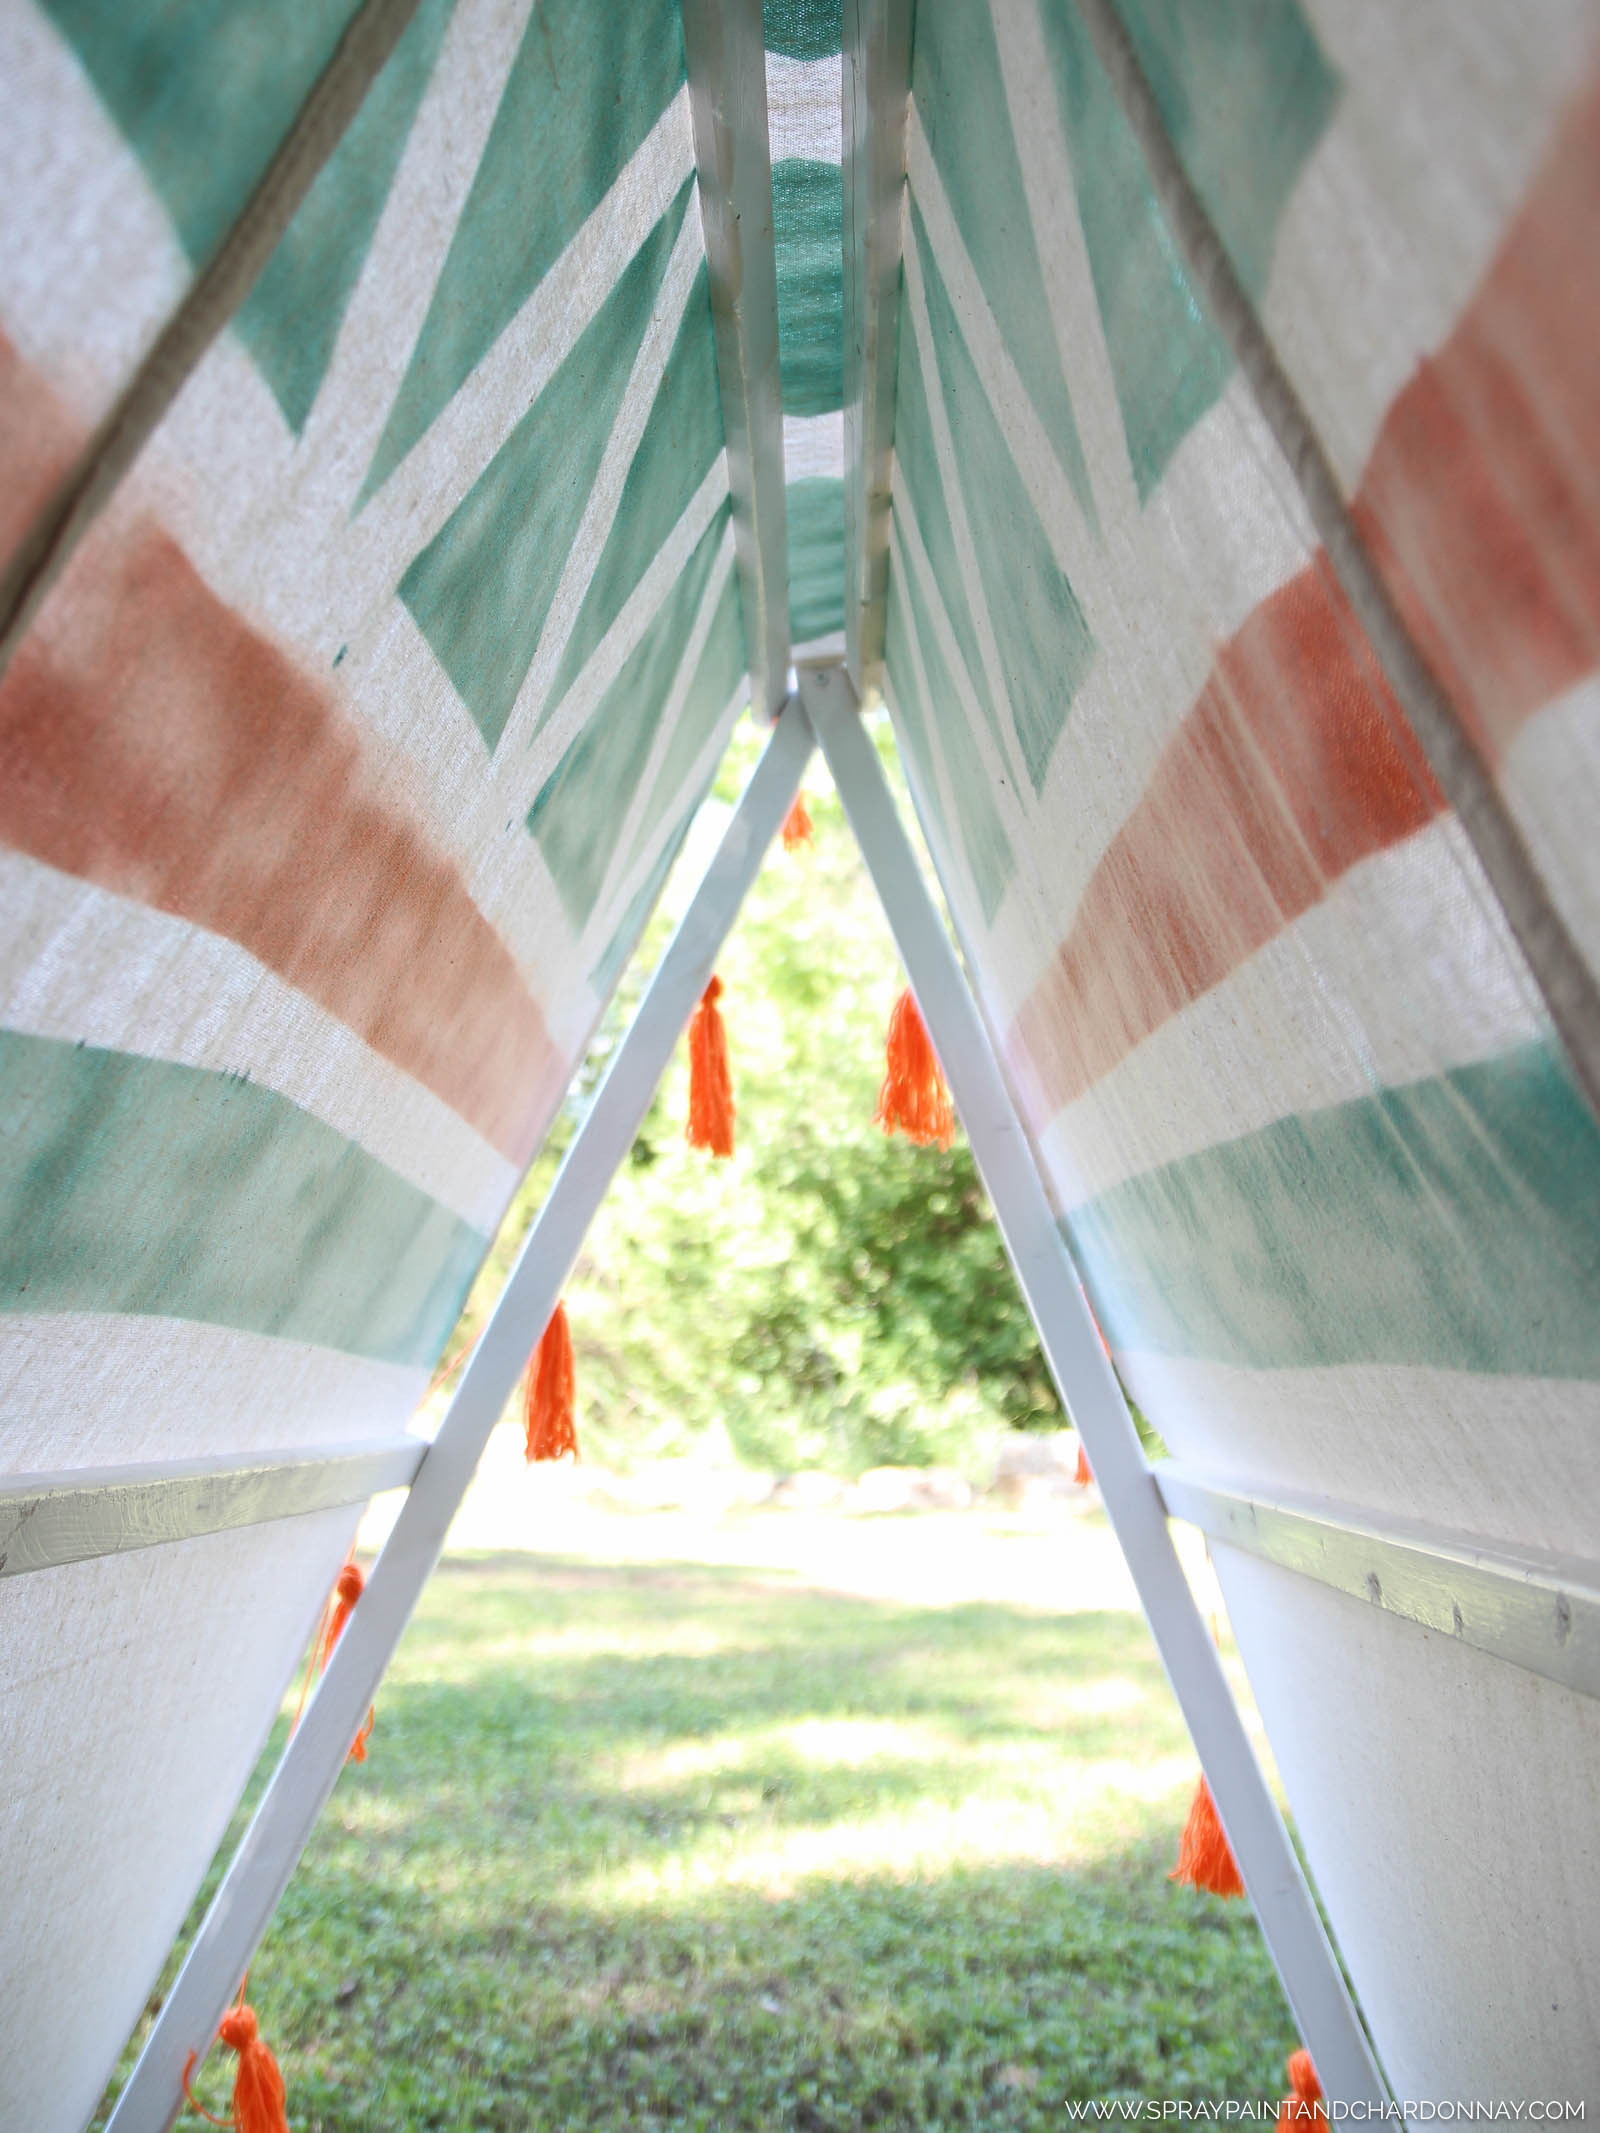 A tailor (or Taylor ha!) made tent that will hopefully bring lots of joy to one very joyful little girl! & DIY: A-Frame Tent | Spray Paint u0026 Chardonnay